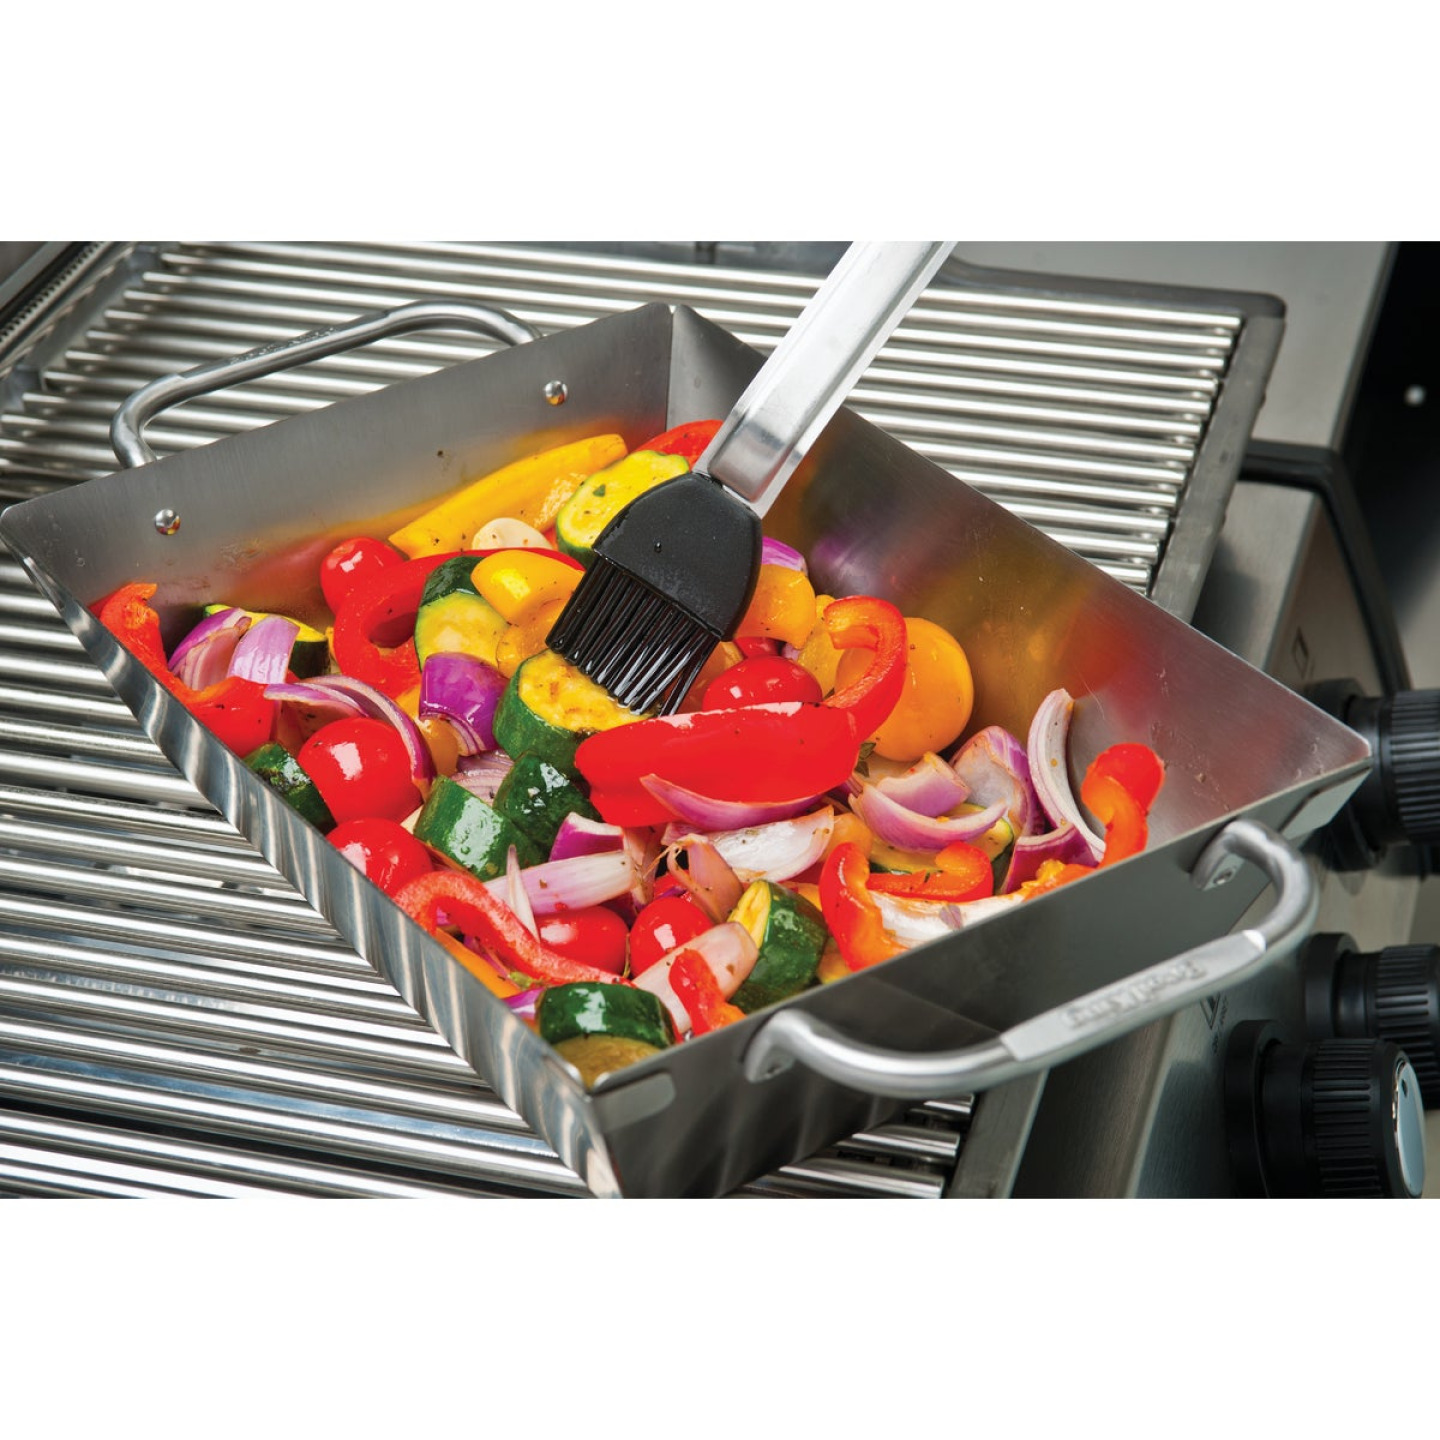 Broil King Imperial 13 In. W. x 9.75 In. L. Stainless Steel Grill Wok Topper Tray Image 3